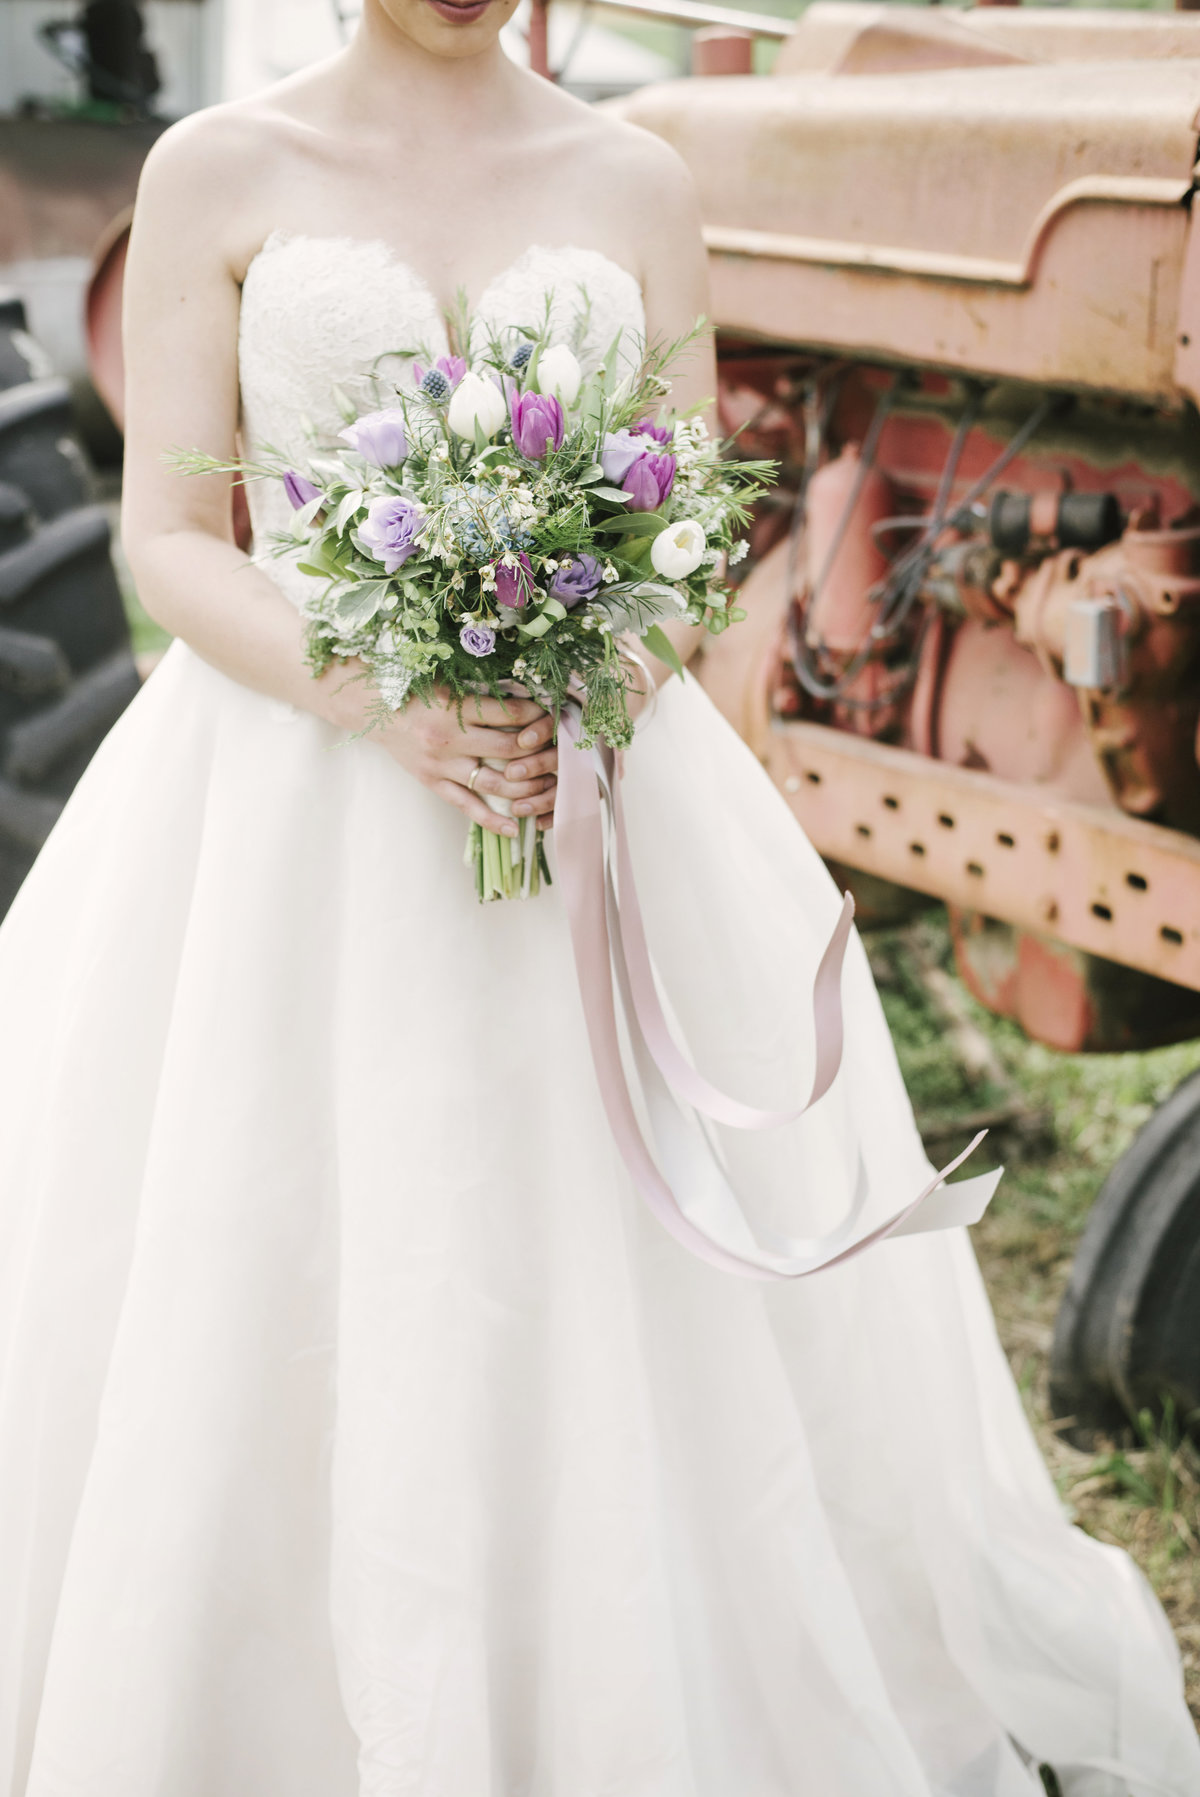 Monica-Relyea-Events-Alicia-King-Photography-Globe-Hill-Ronnybrook-Farm-Hudson-Valley-wedding-shoot-inspiration39